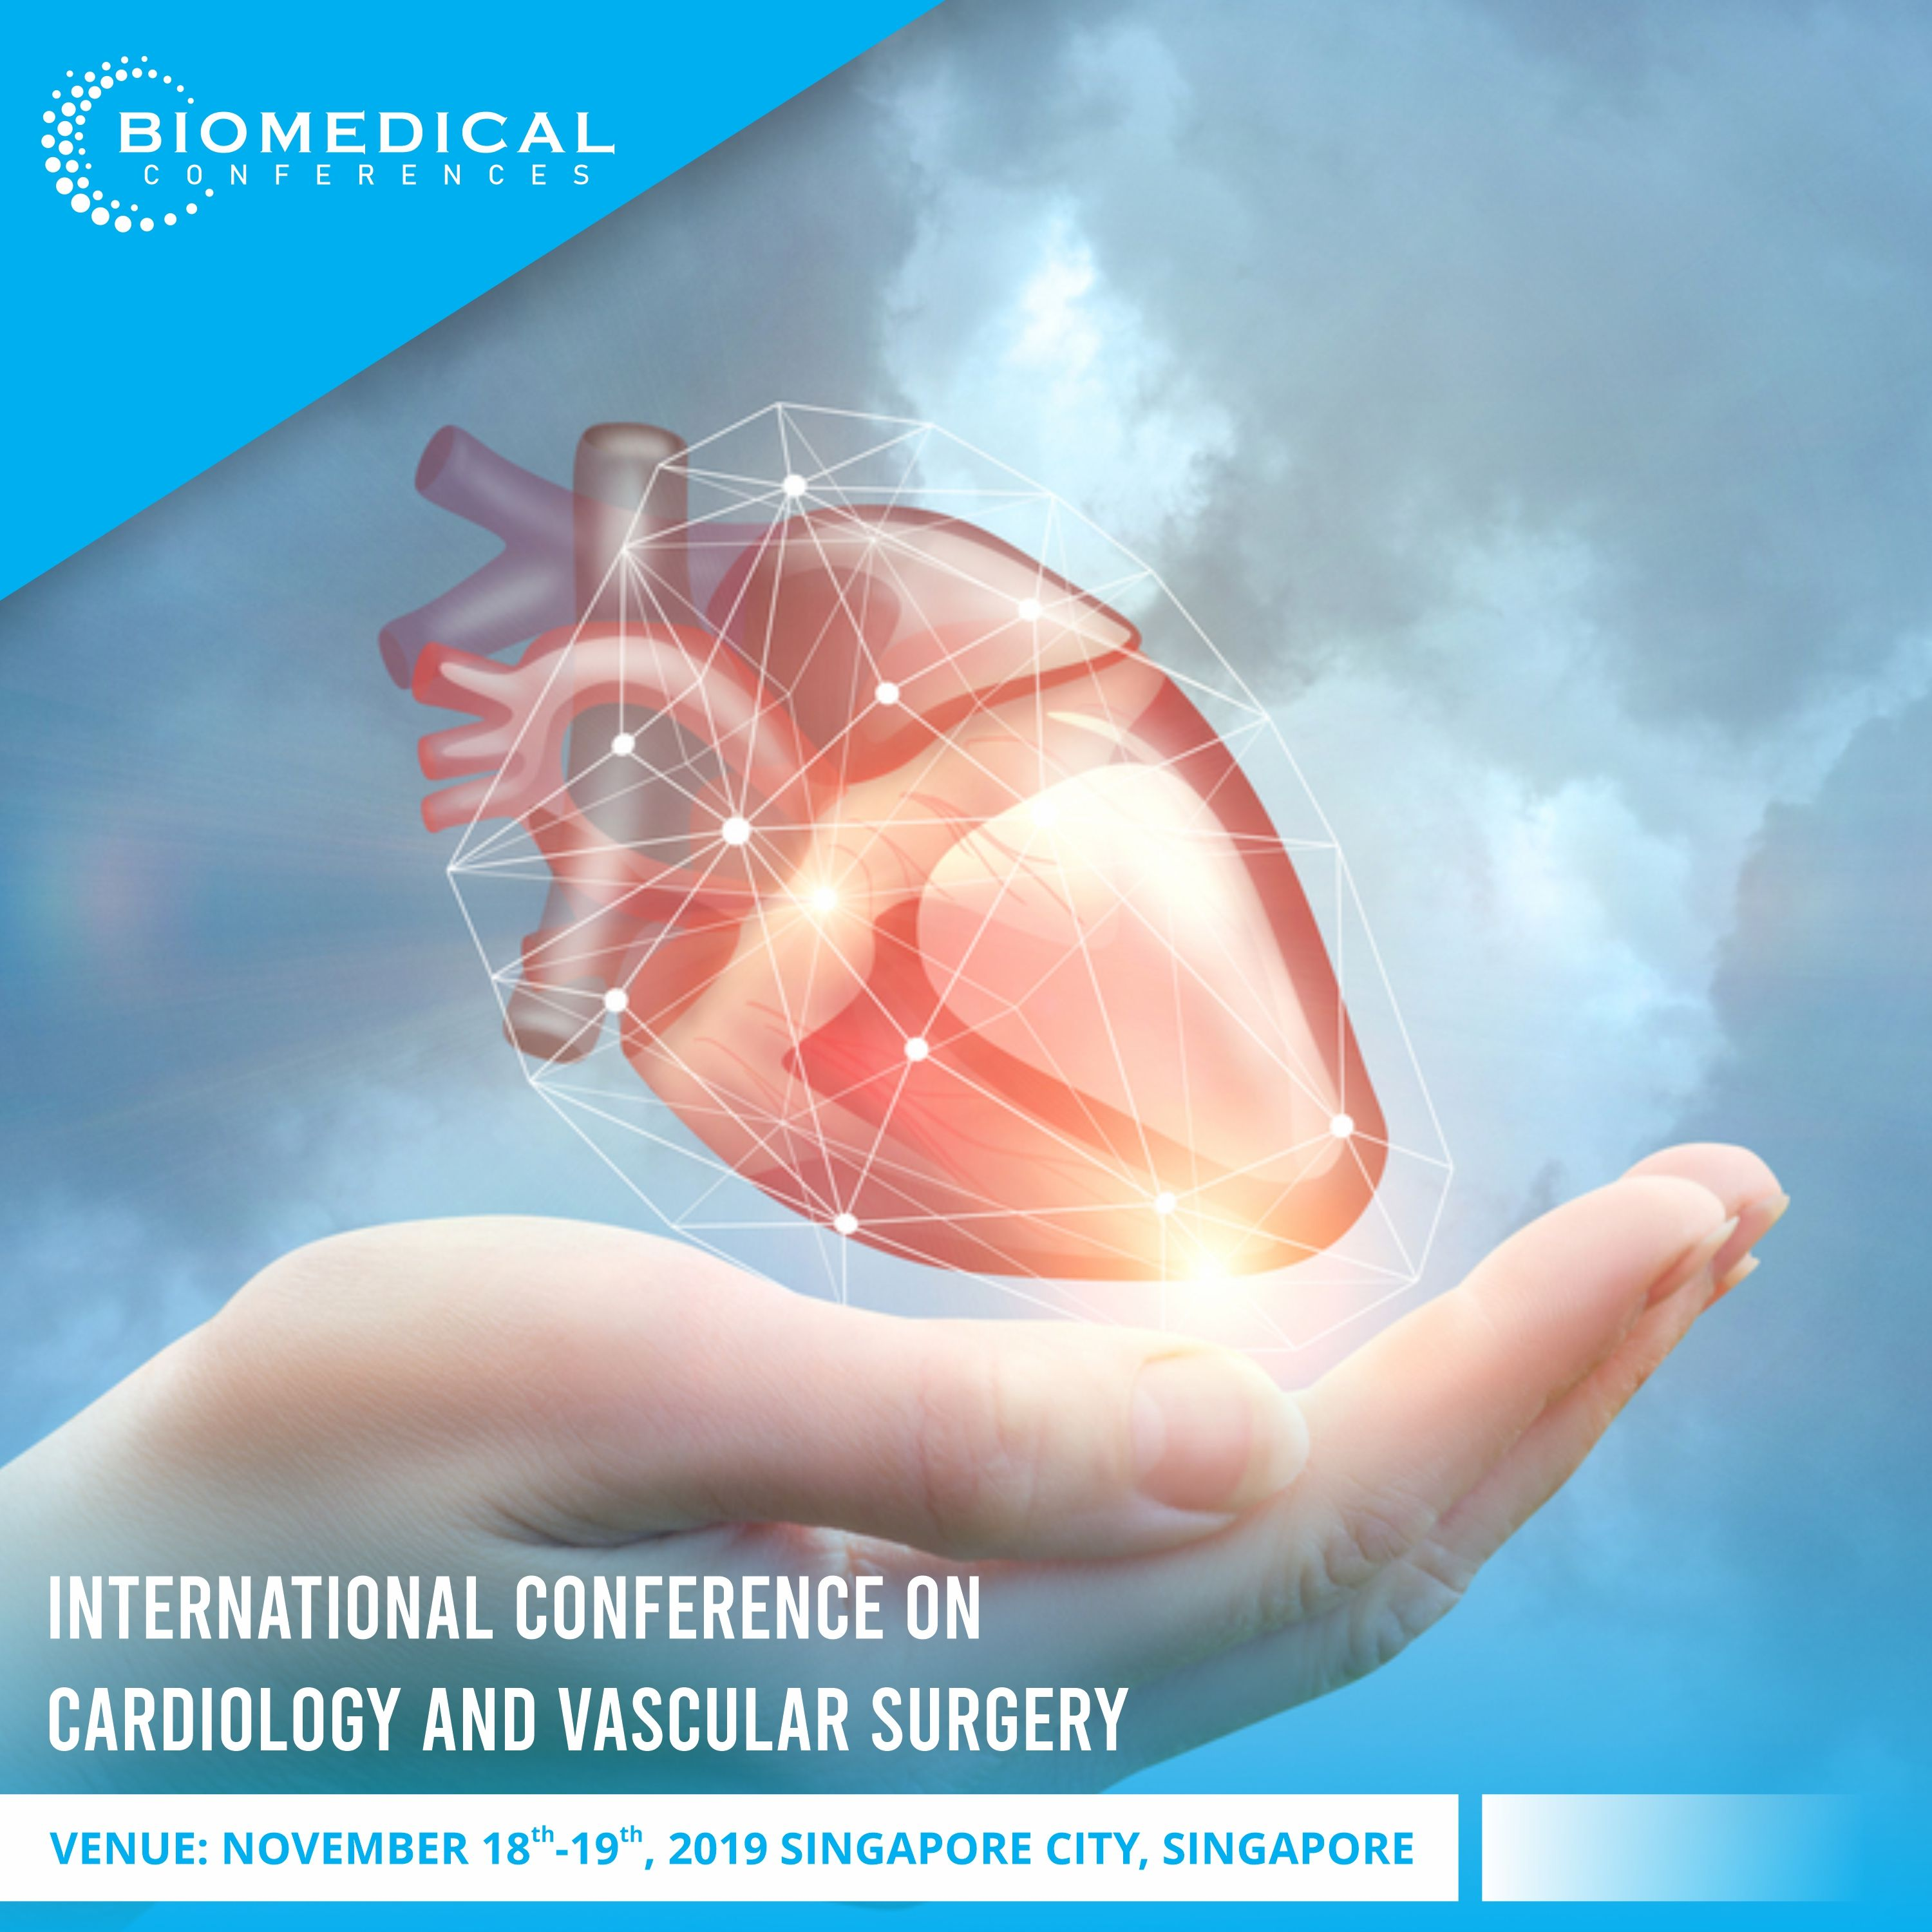 Cardiology Conferences in Singapore provides a great